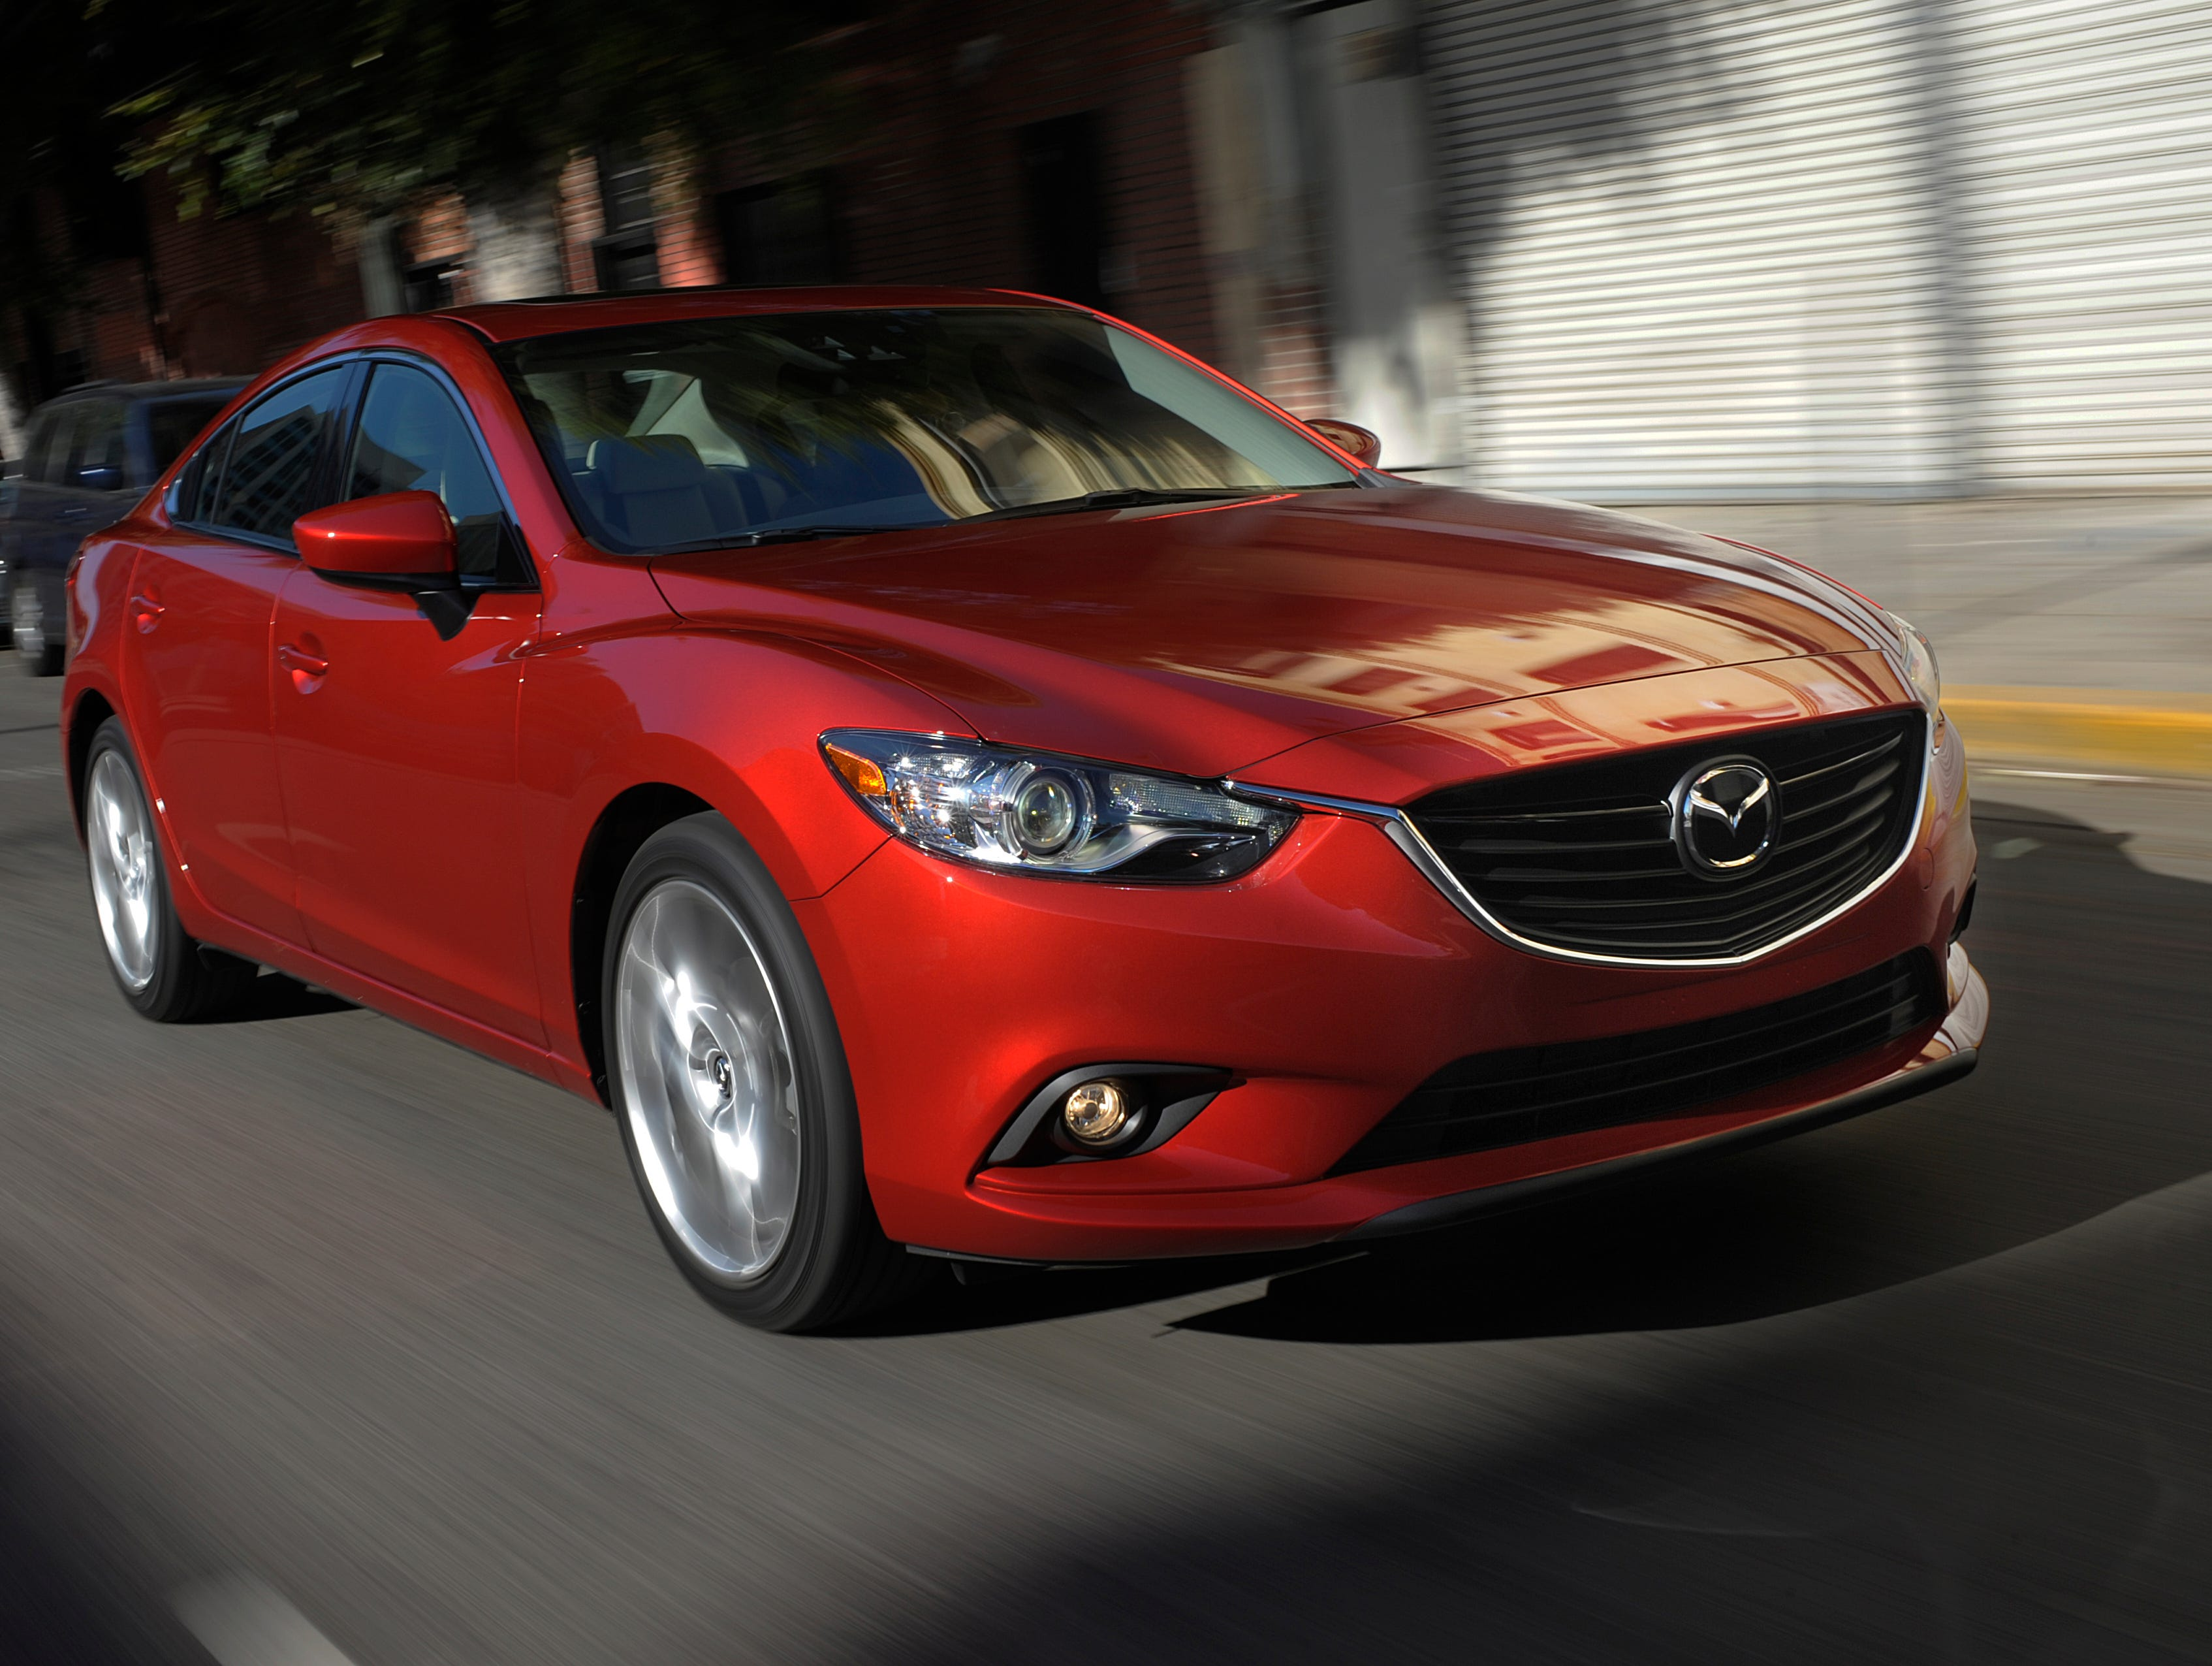 The redesigned 2014 Mazda 6 is much more stylish than the outgoing model and stands out among the many redesigned midsize sedans.